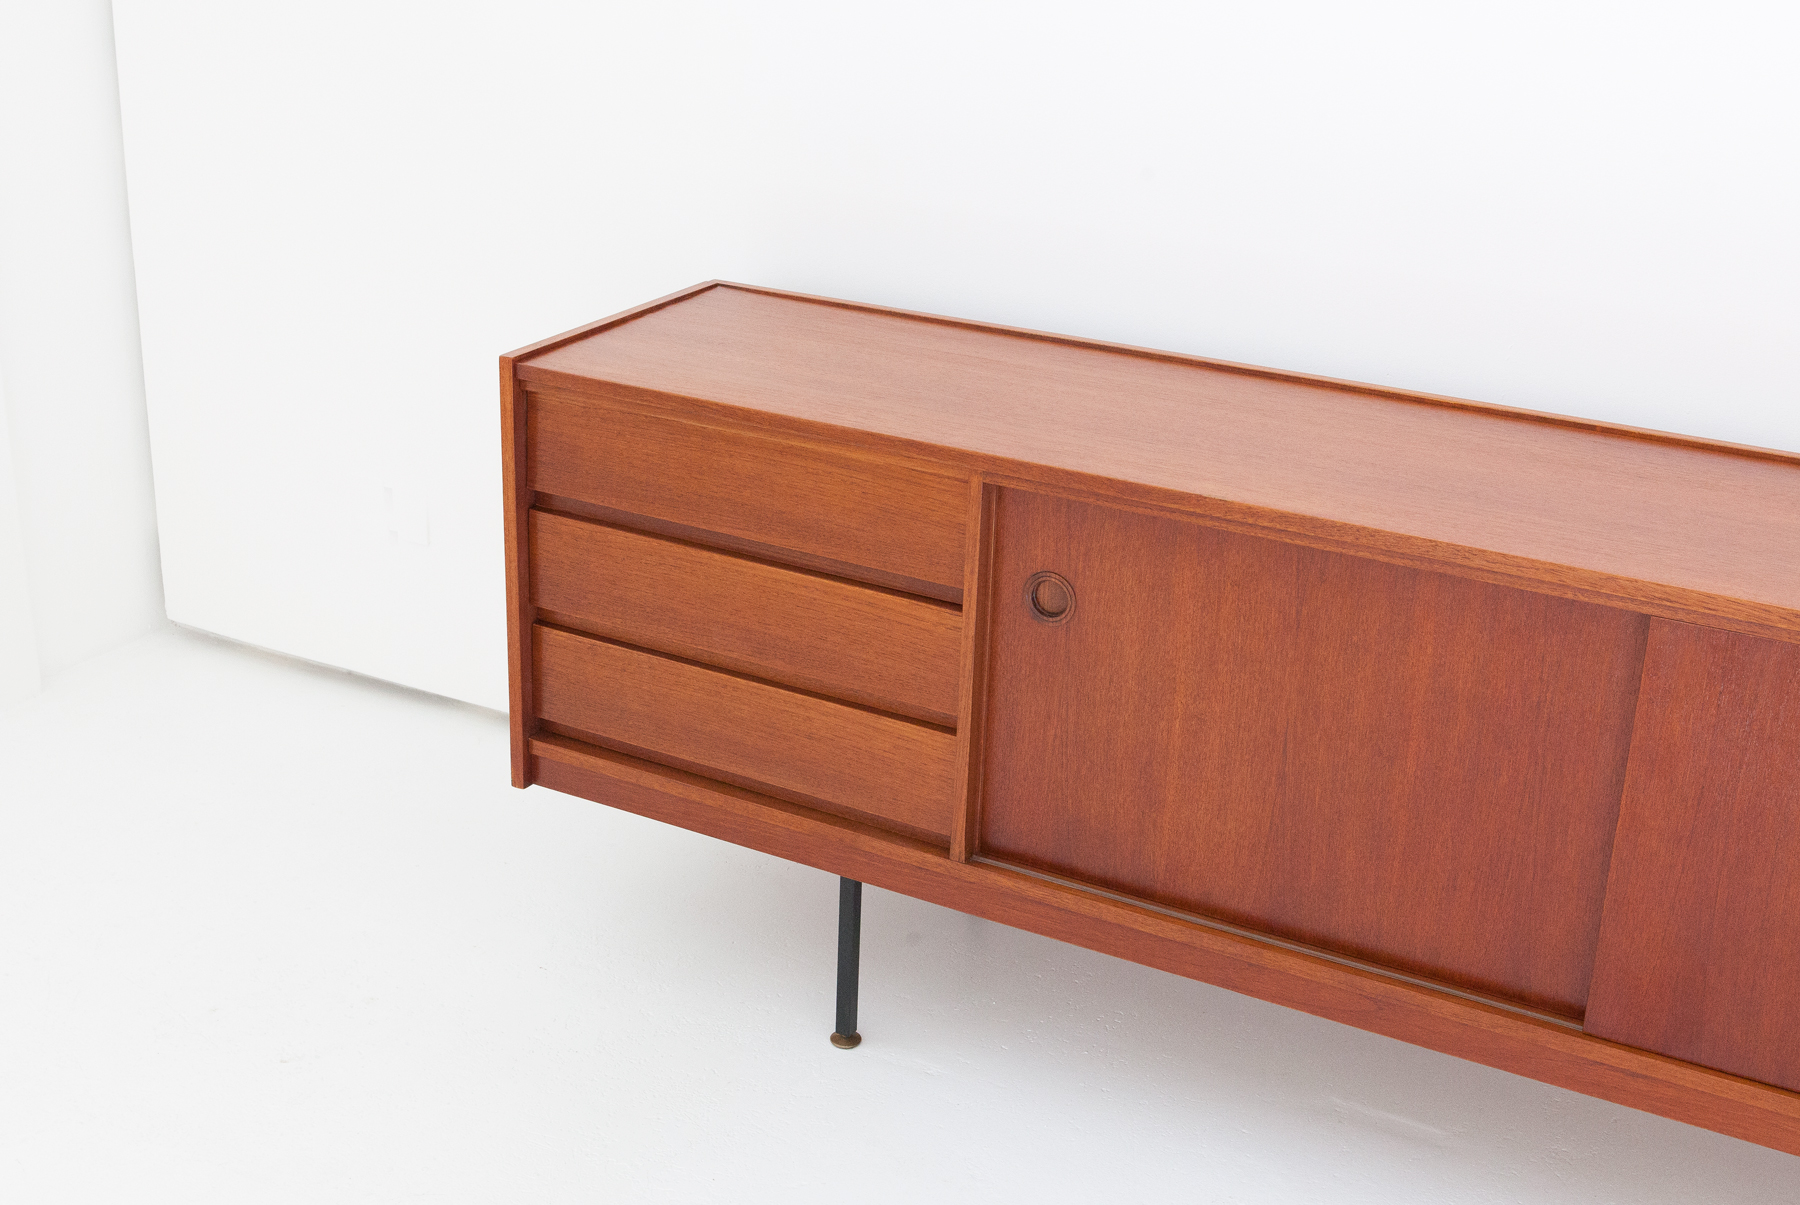 Sideboard 95 3 retro4m for Sideboard 4 meter lang